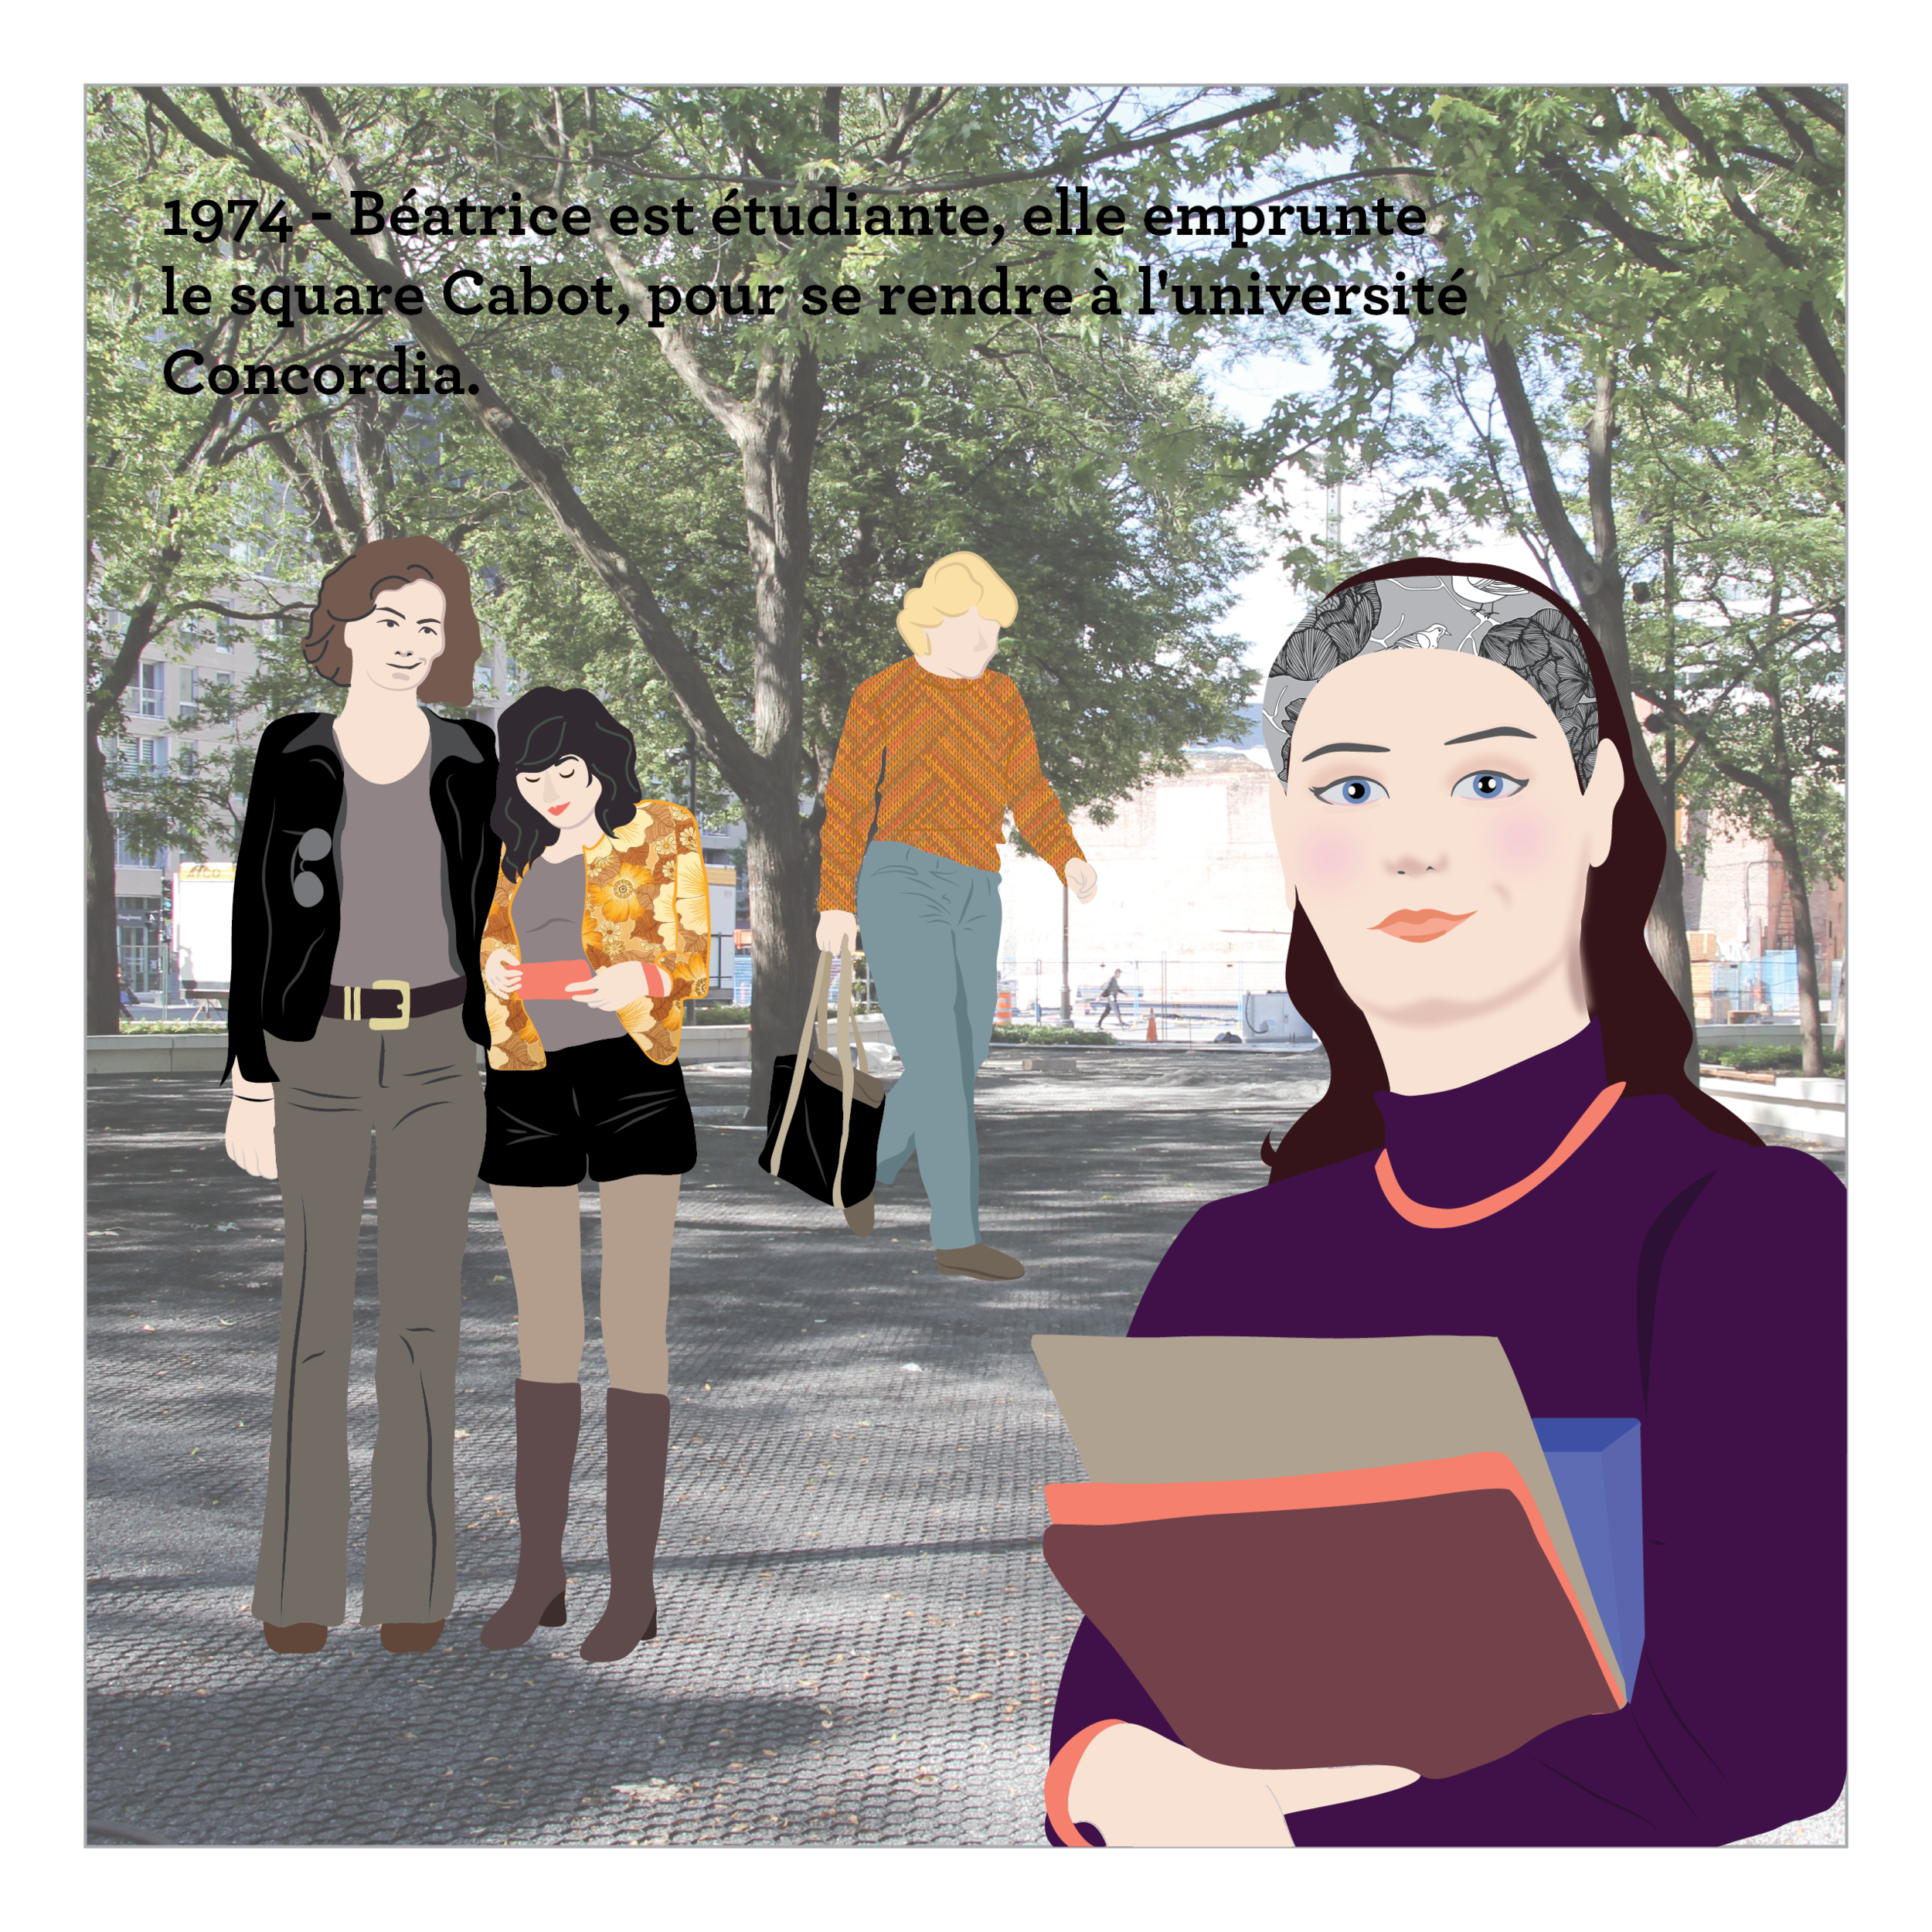 Cabot-defileStoryboardVueVisionneuse-030715-07.png